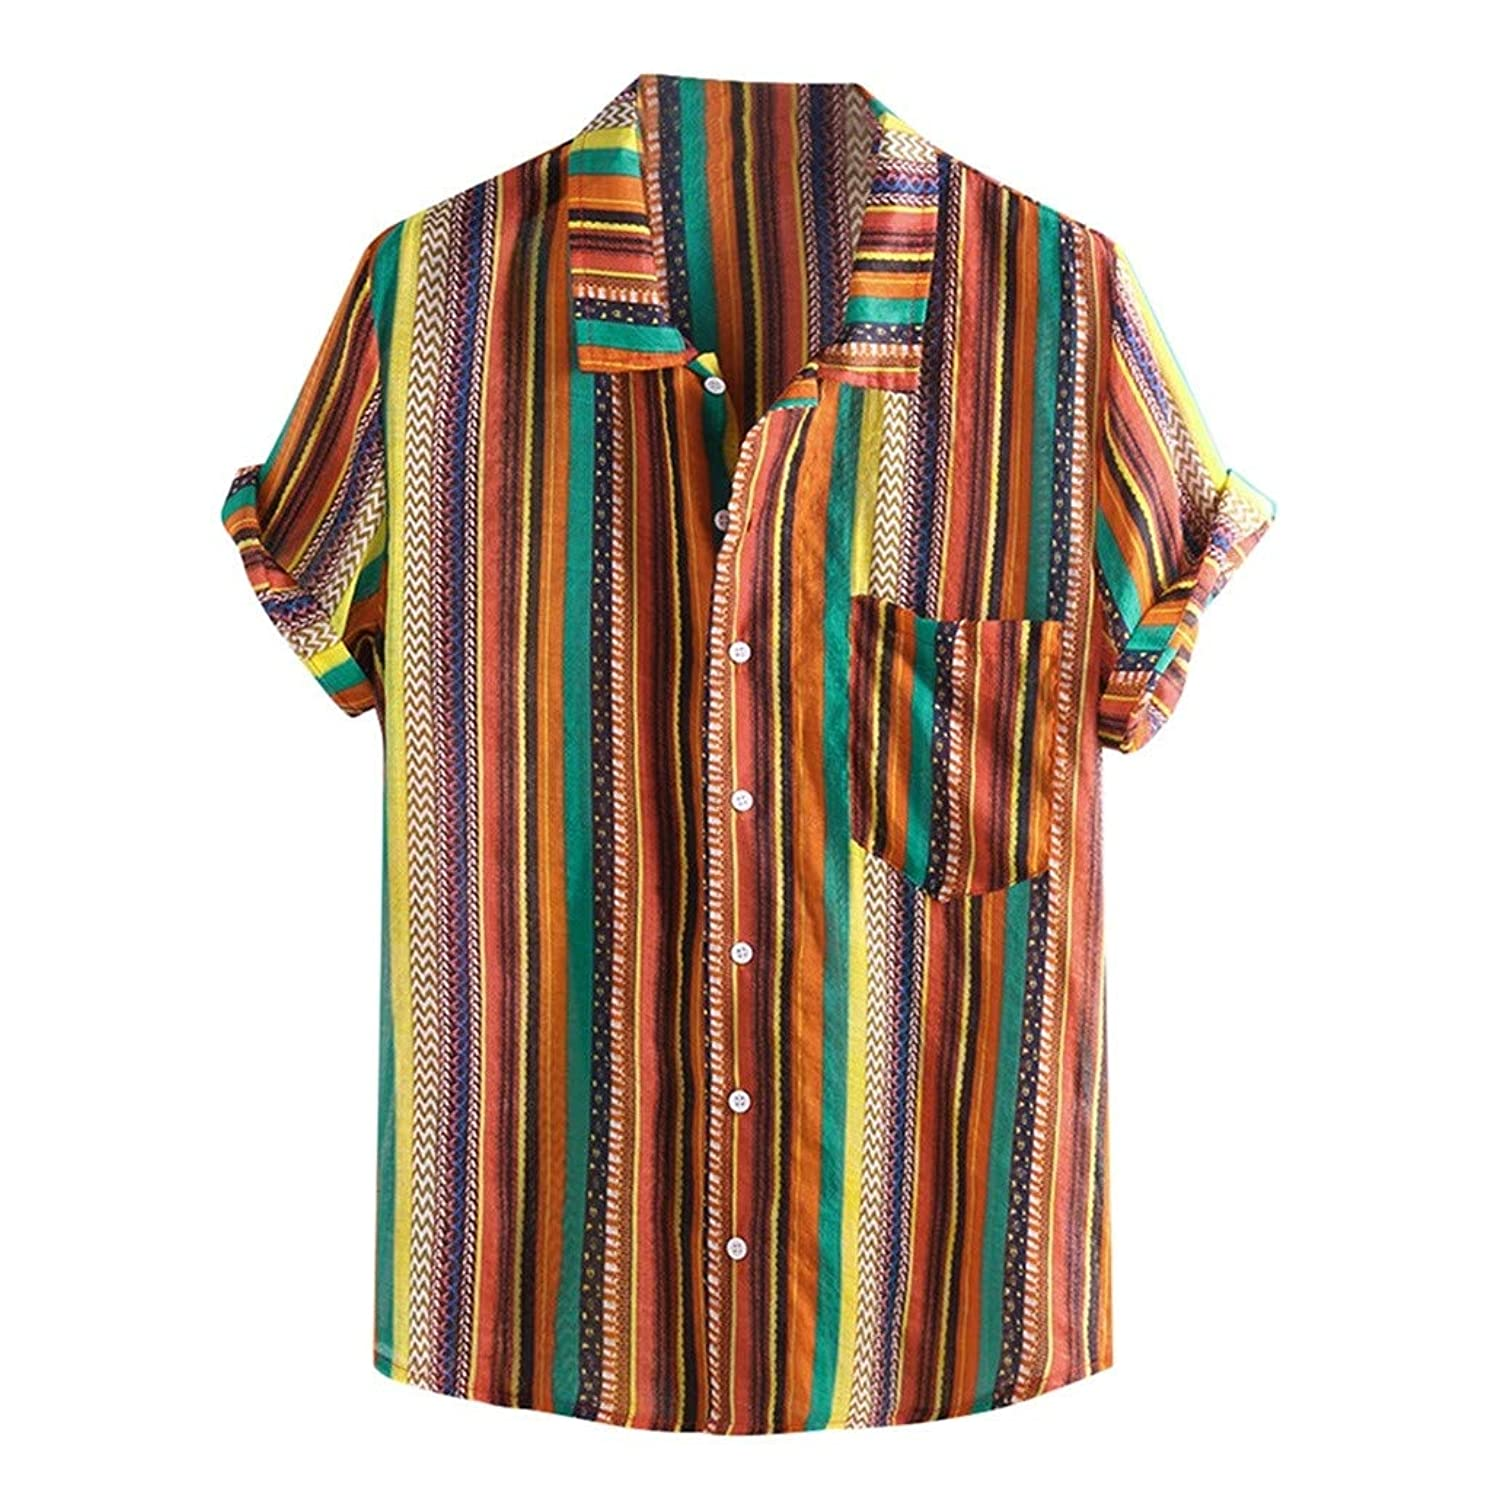 Swyss Men's Casual Ethnic Style T-Shirts Colorful Stripe Short Sleeve Loose Summer Beach Shirts Tops